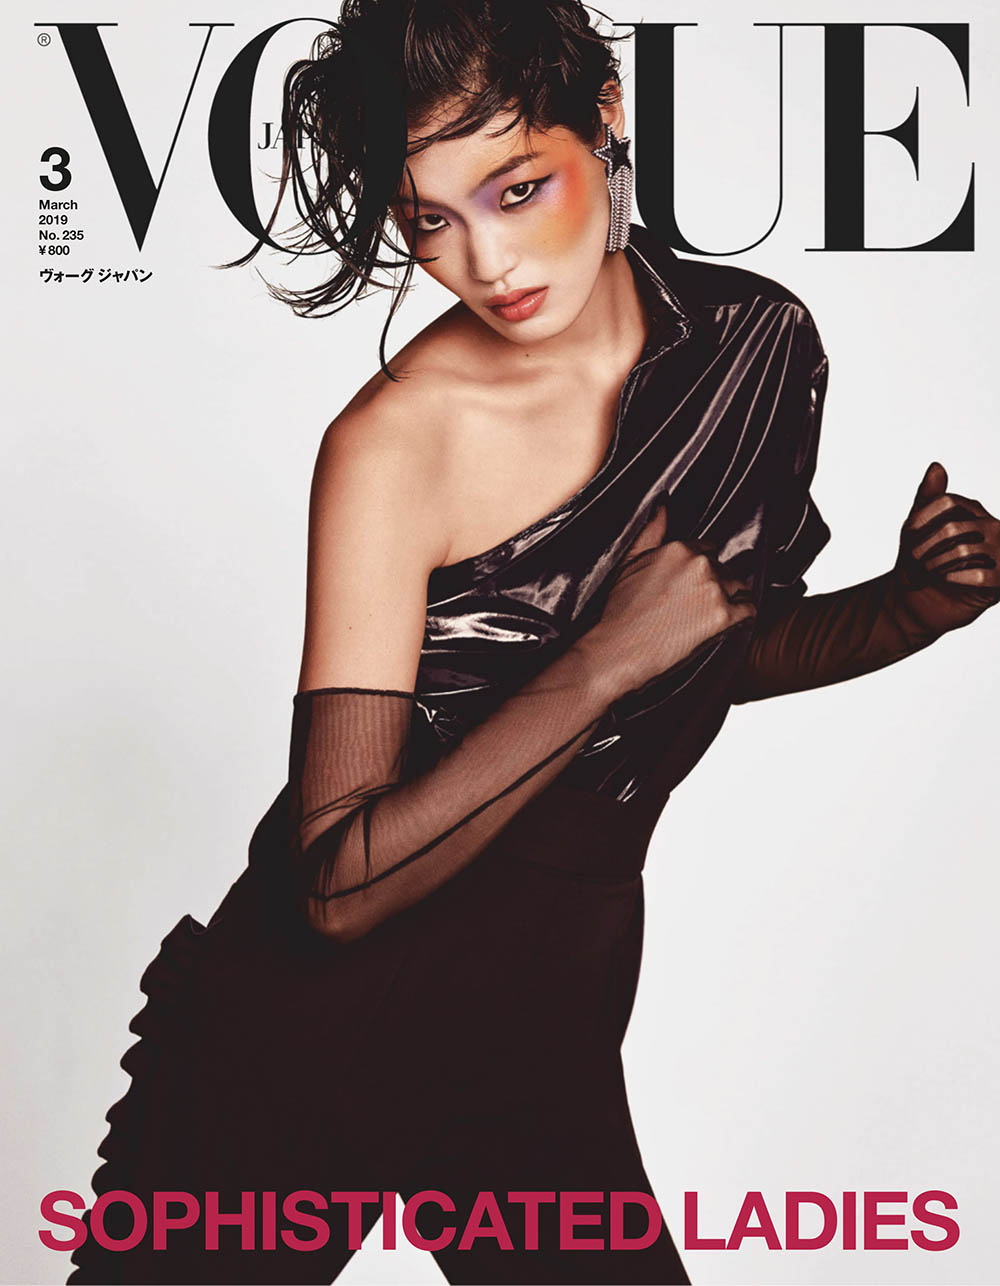 Vogue Japan March 2019 covers by Luigi & Iango